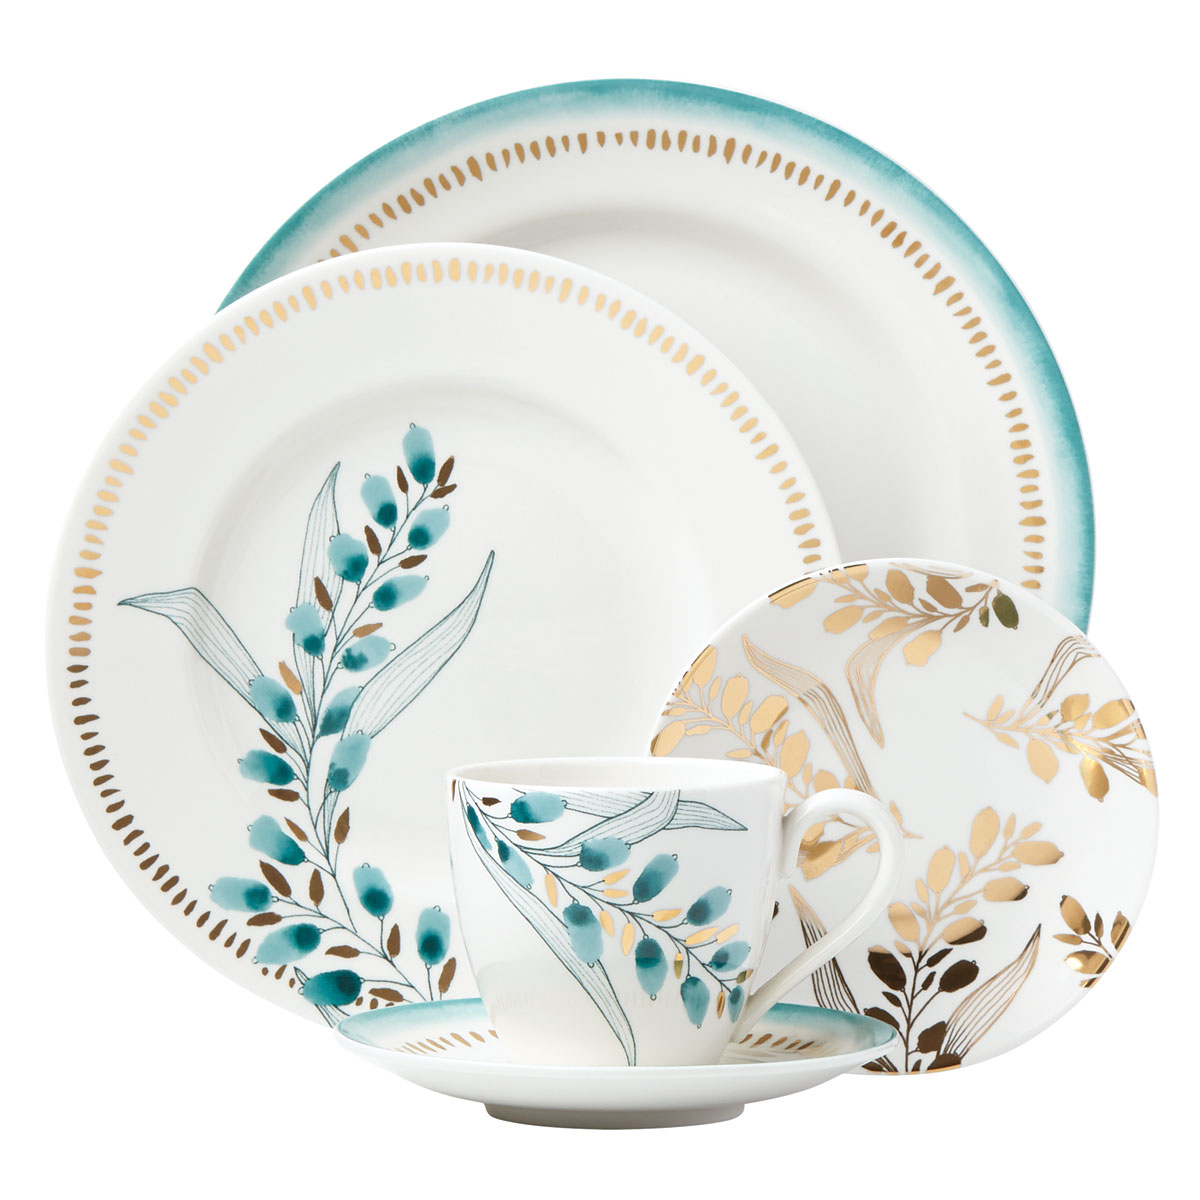 Lenox Goldenrod Dinnerware 5 Piece Place Setting